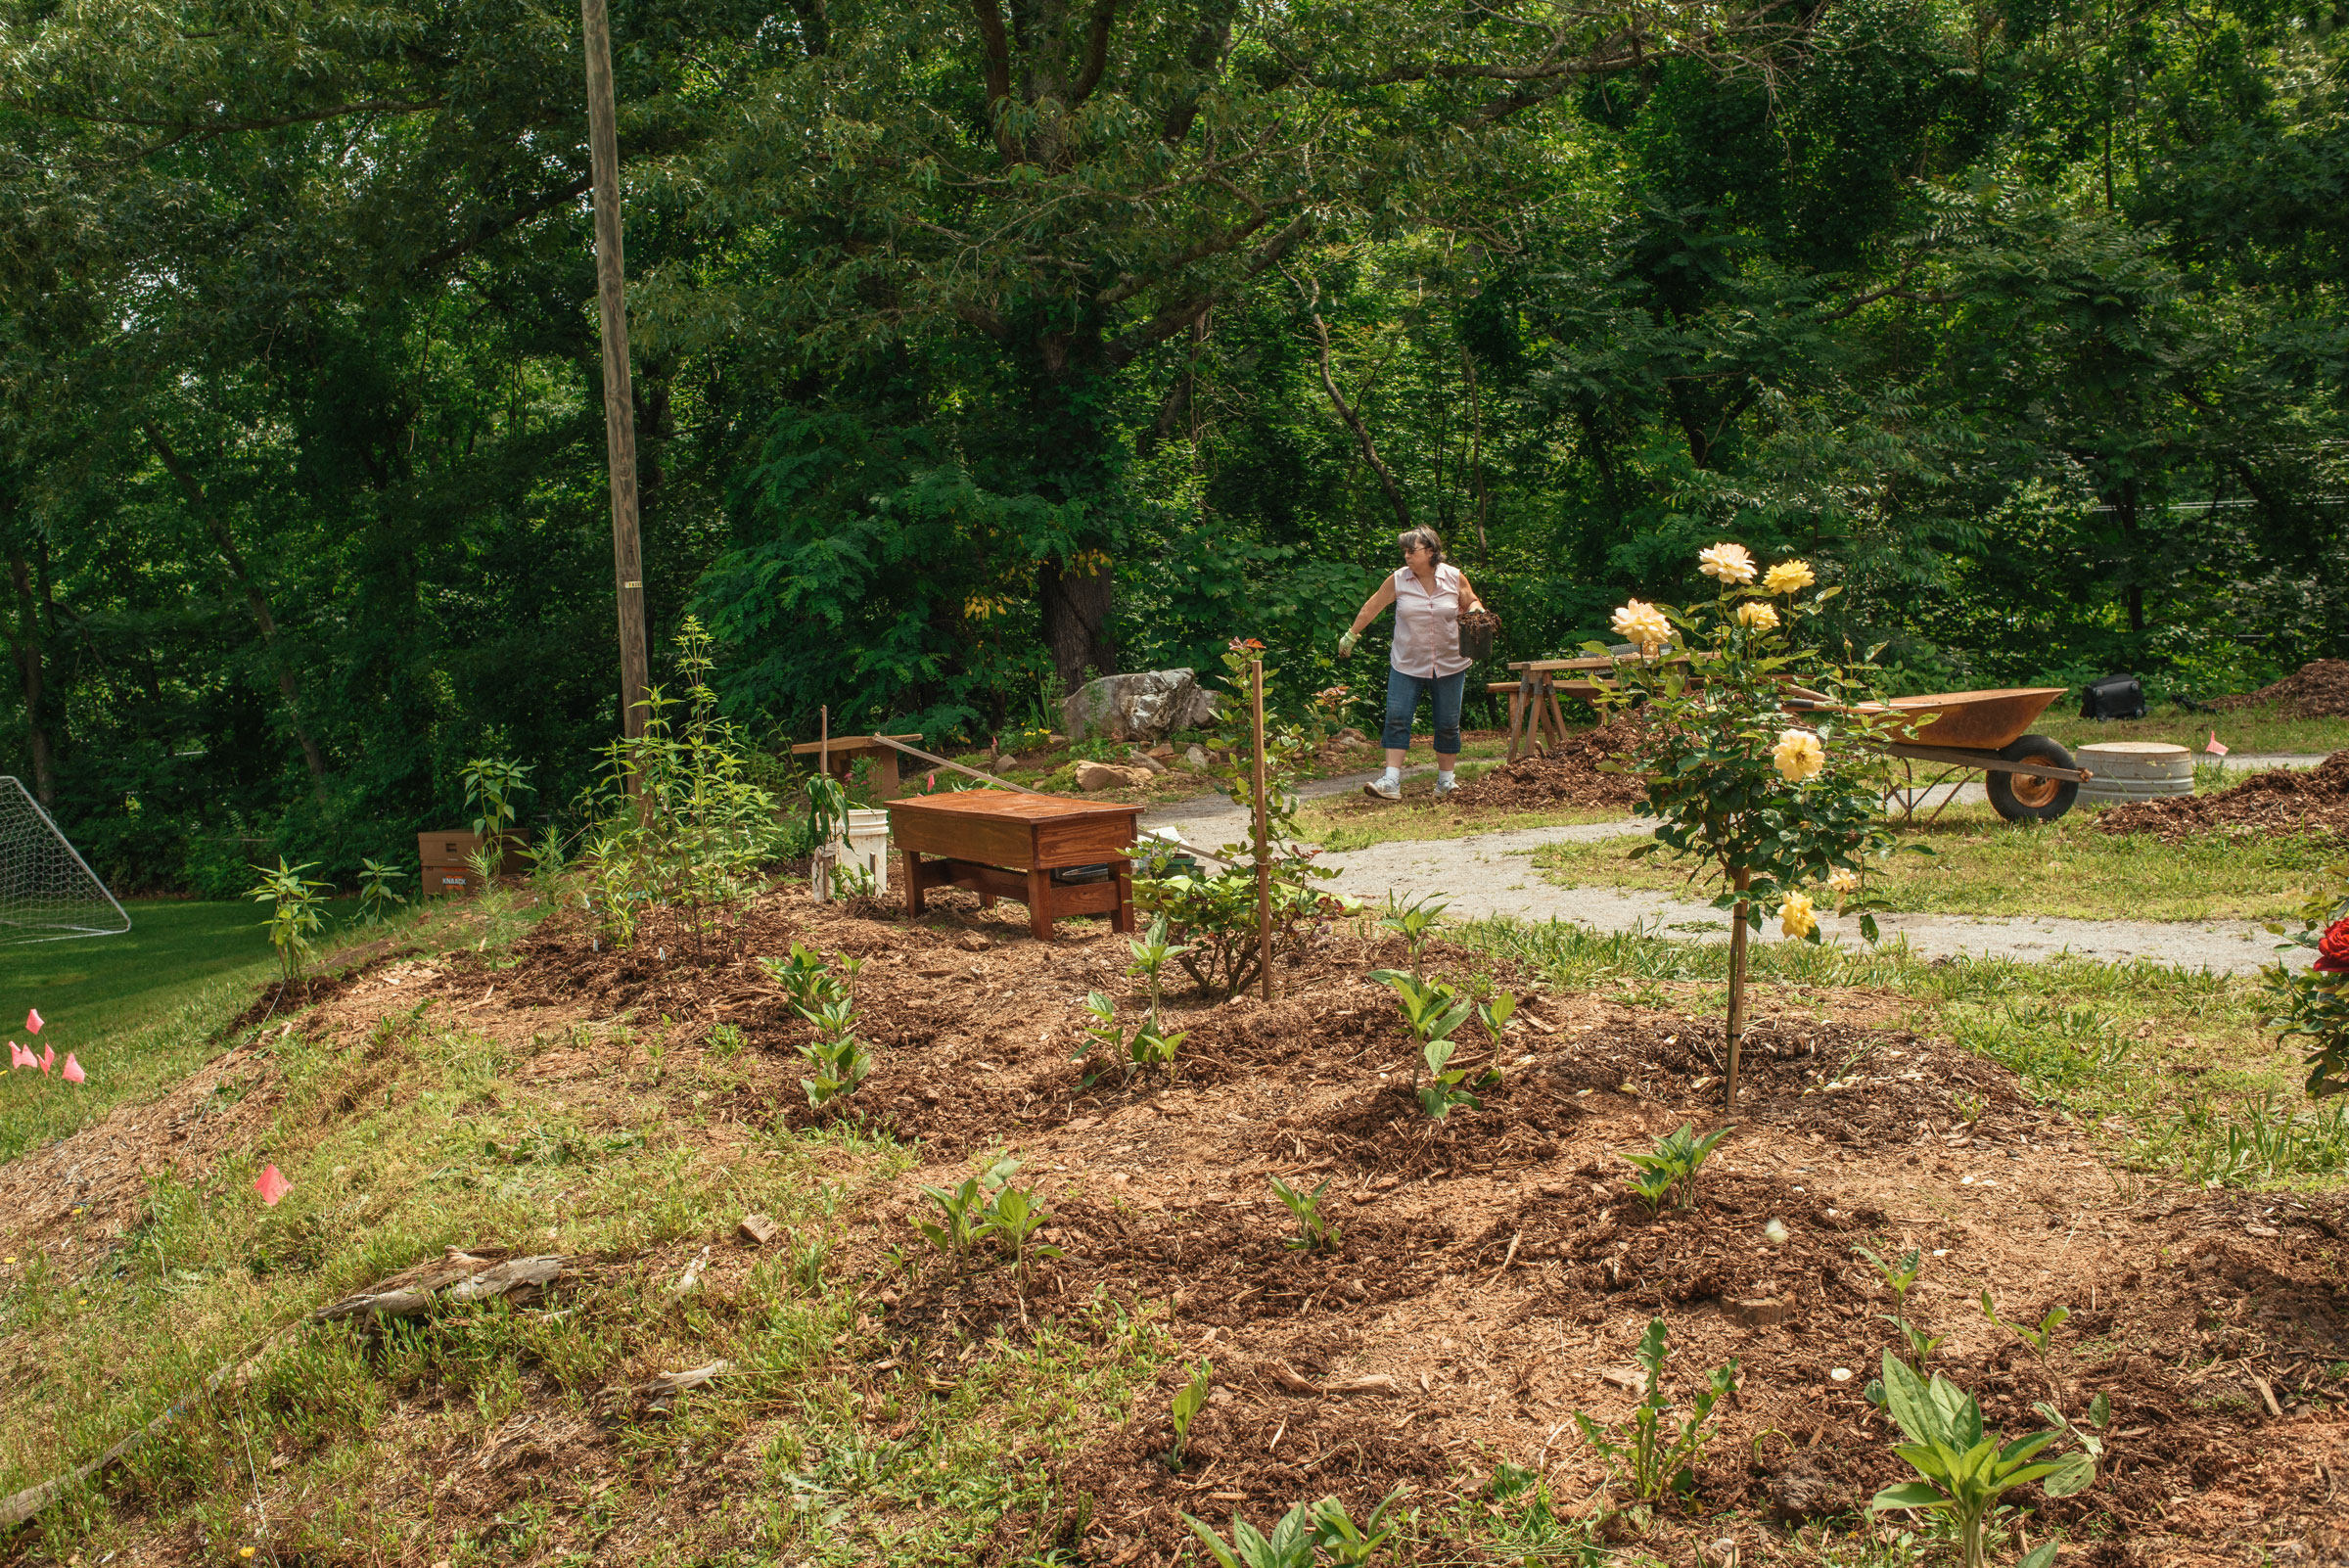 The garden will host 300 bird and pollinator-friendly plants by the time the project is done. Mike Belleme